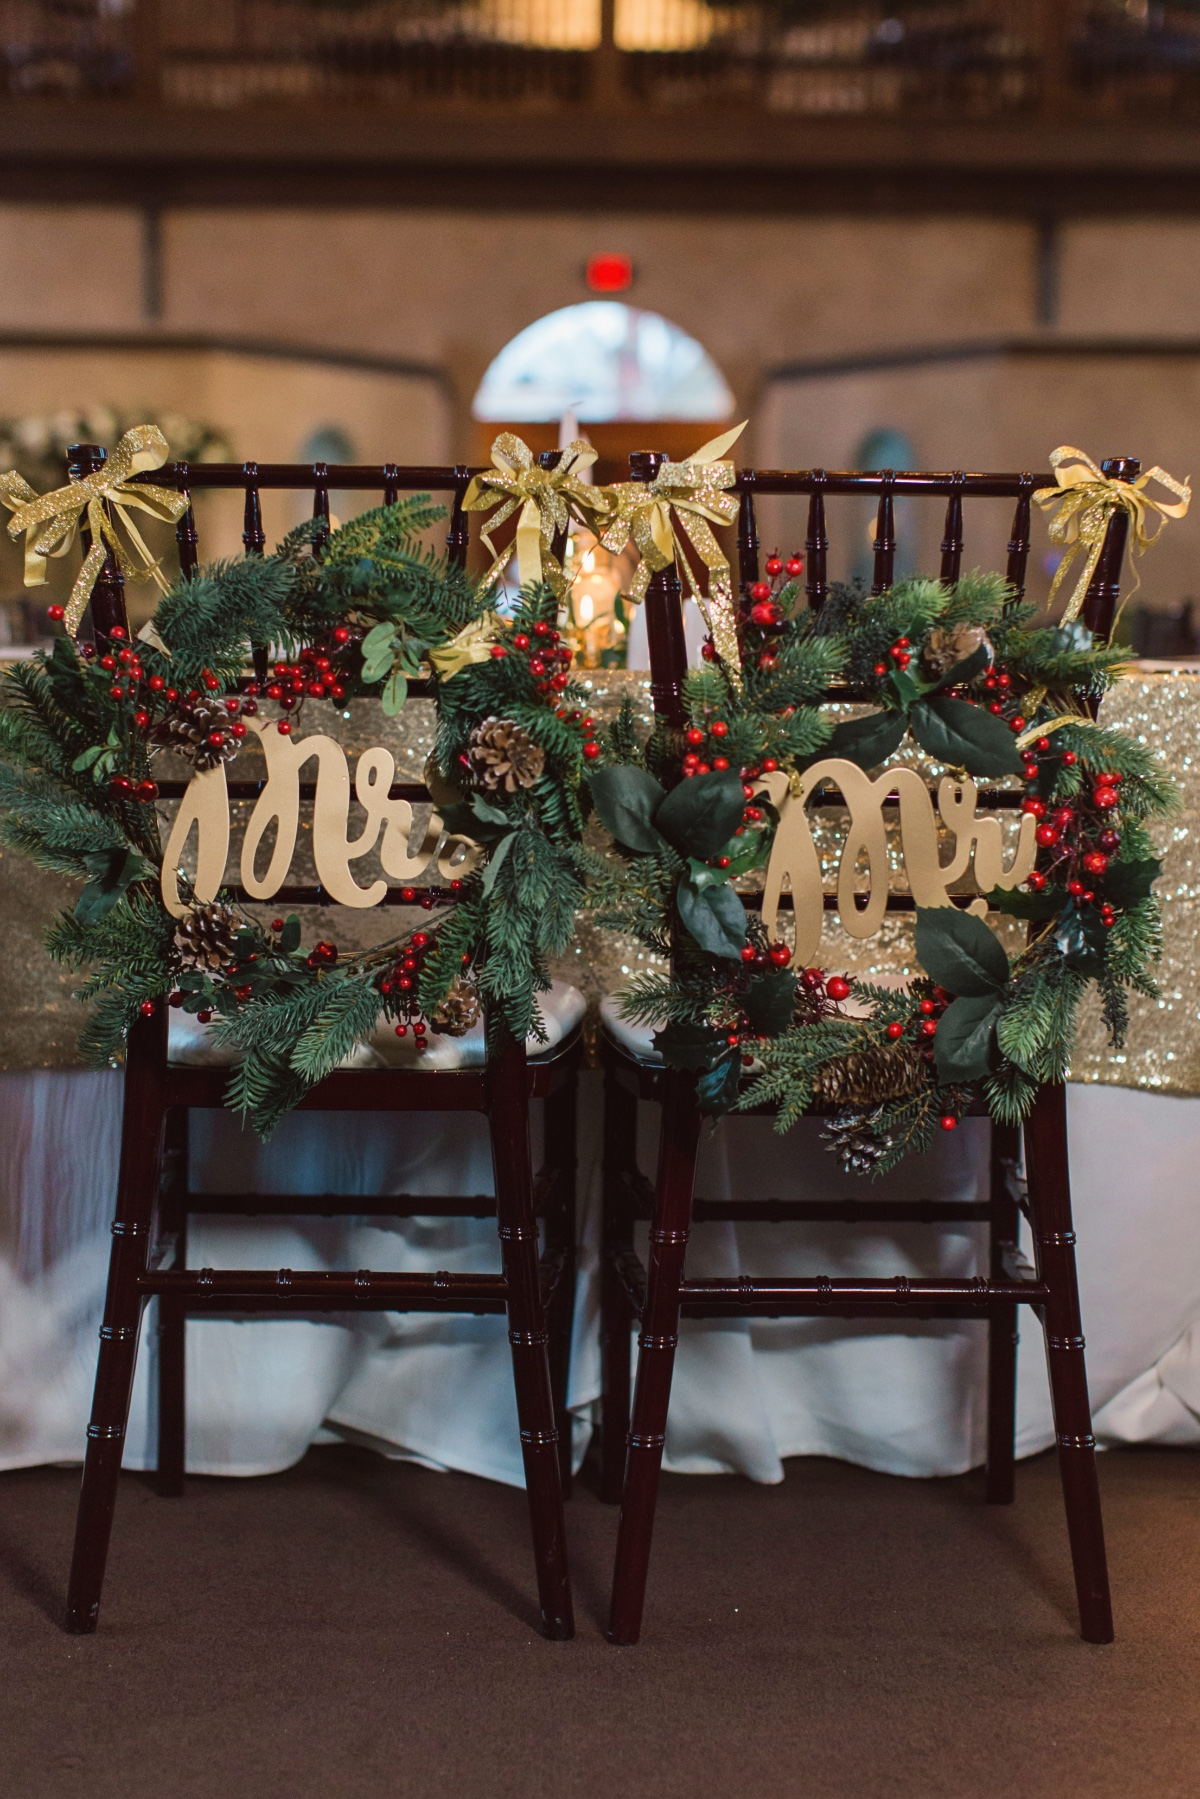 Mr. and Mrs. chair wreaths